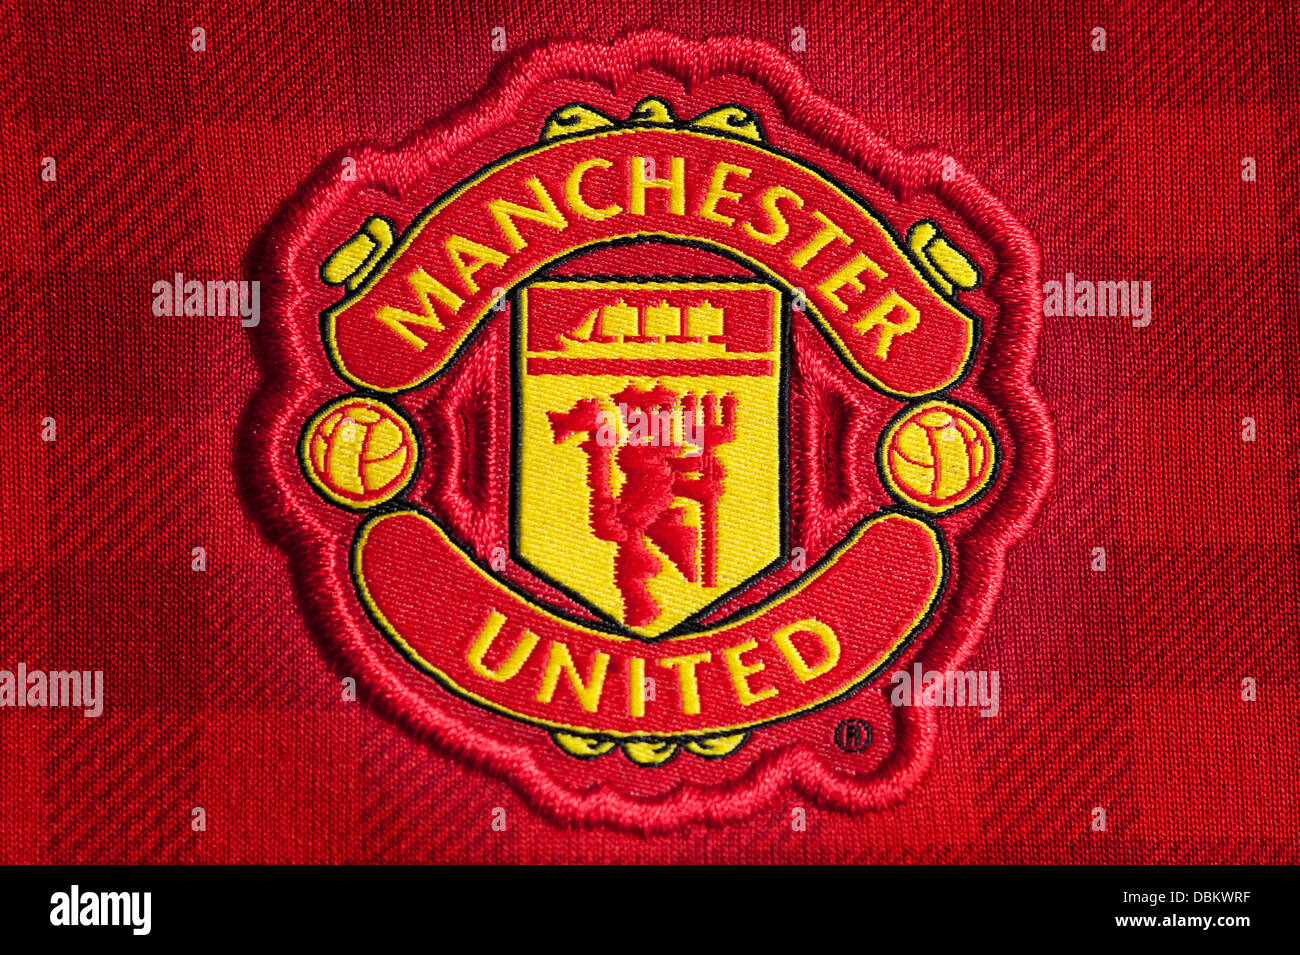 Manchester United Football Club Crest Stock Photo 58829667